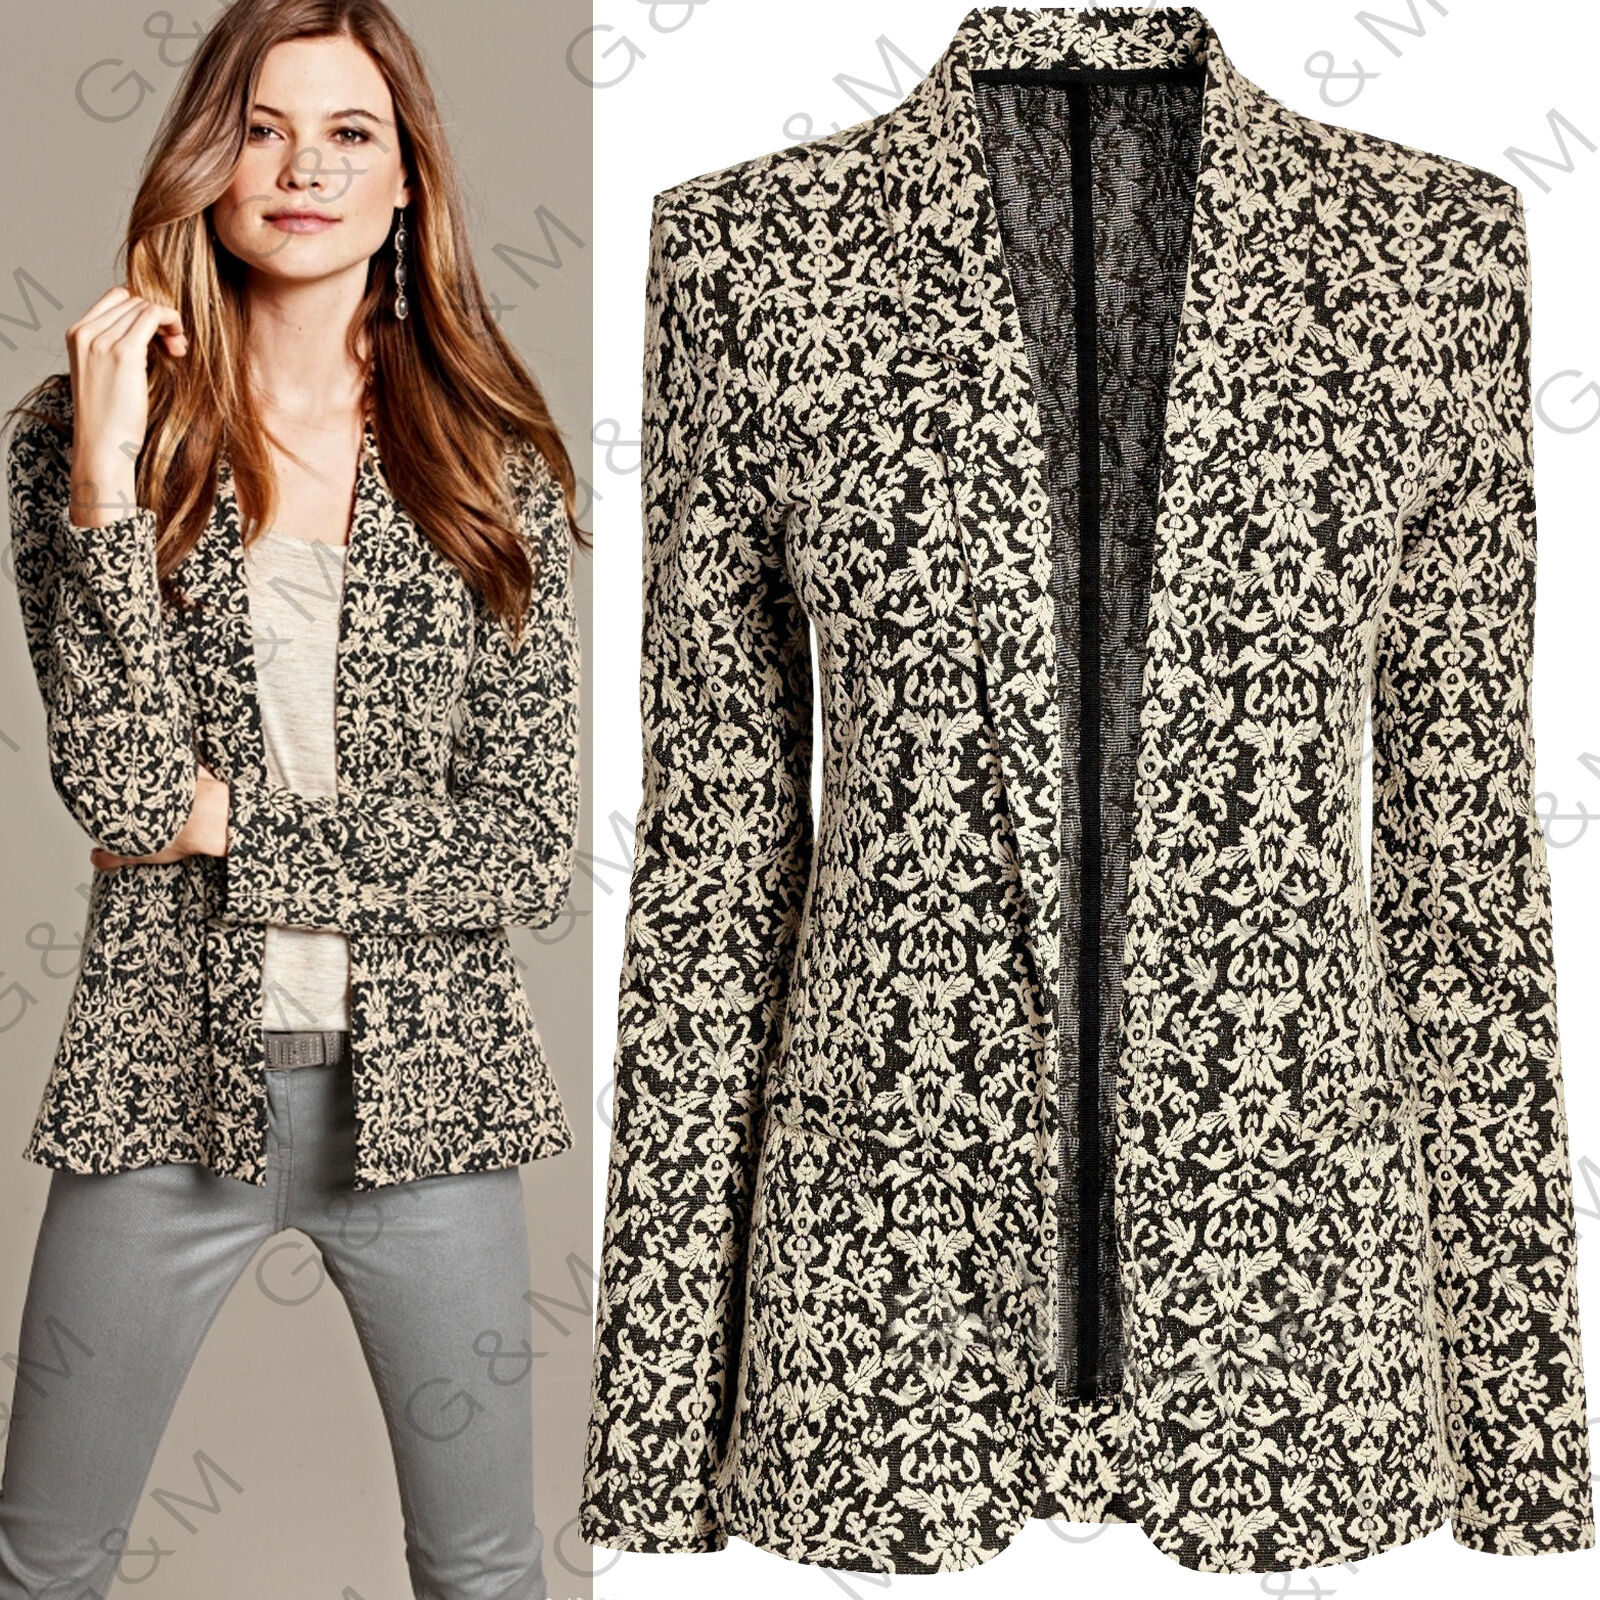 Discover jackets & coats on sale for women at ASOS. Shop the latest collection of jackets & coats for women on sale.